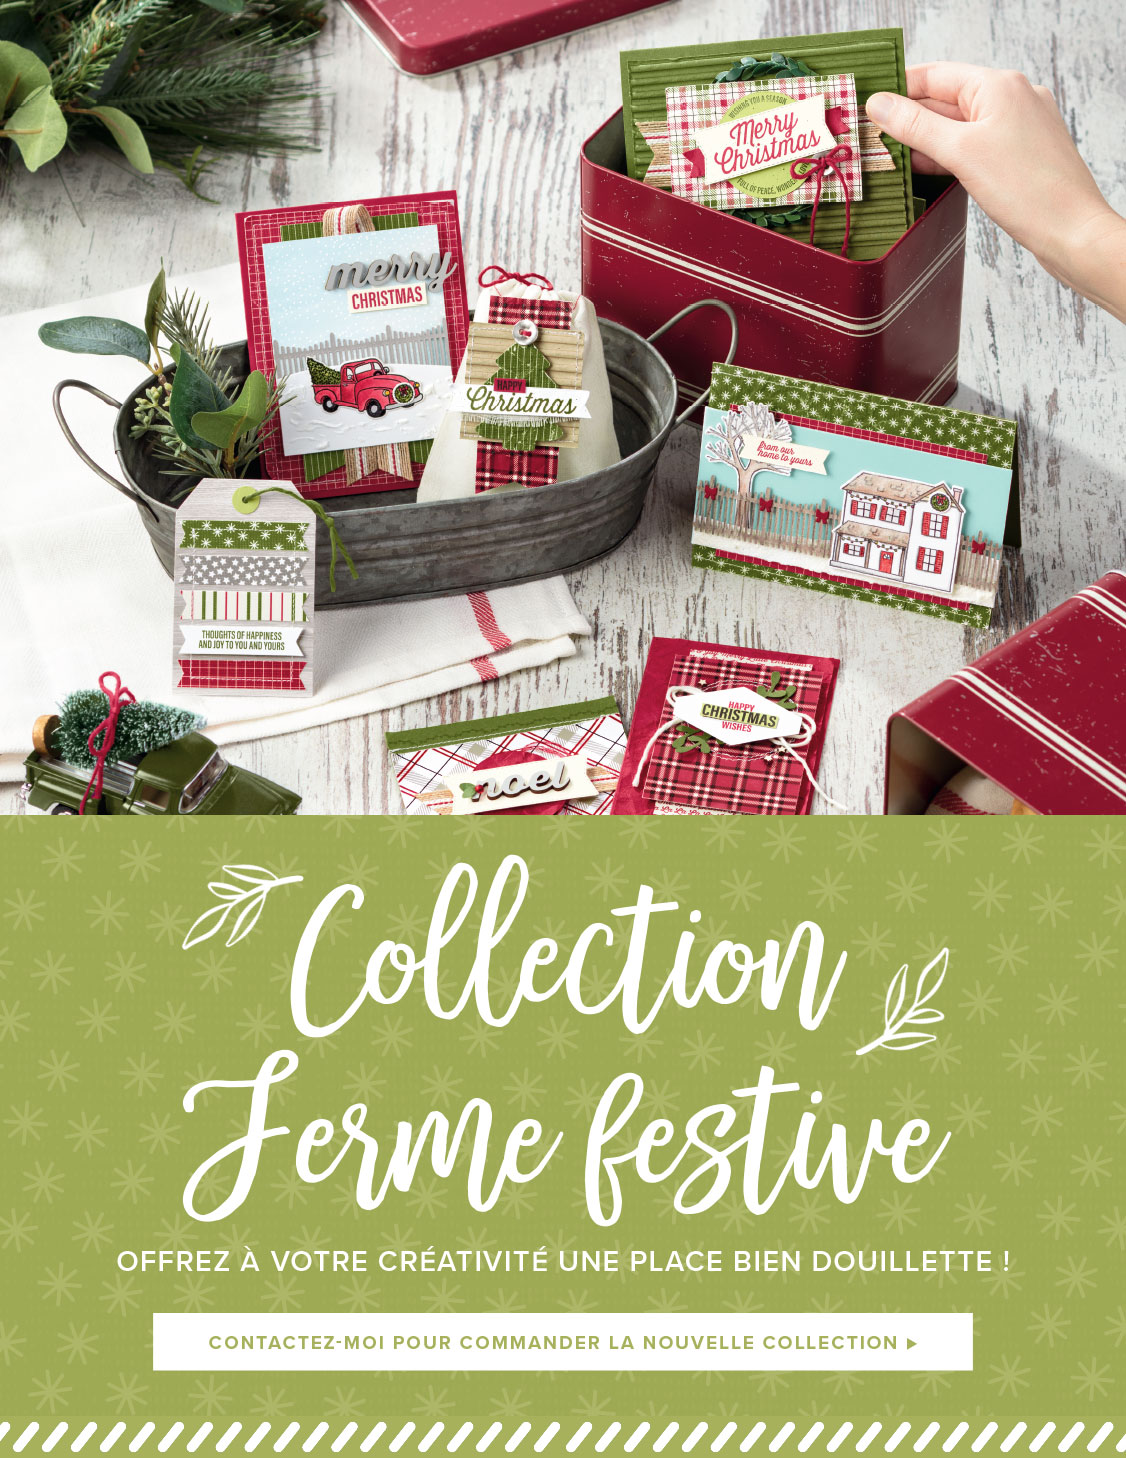 https://su-media.s3.amazonaws.com/media/catalogs/2018%20Holiday%20Catalog/Shareable%20Images/08.01.18_SHAREABLE2_HOLIDAY_CATALOG_FRQC.jpg